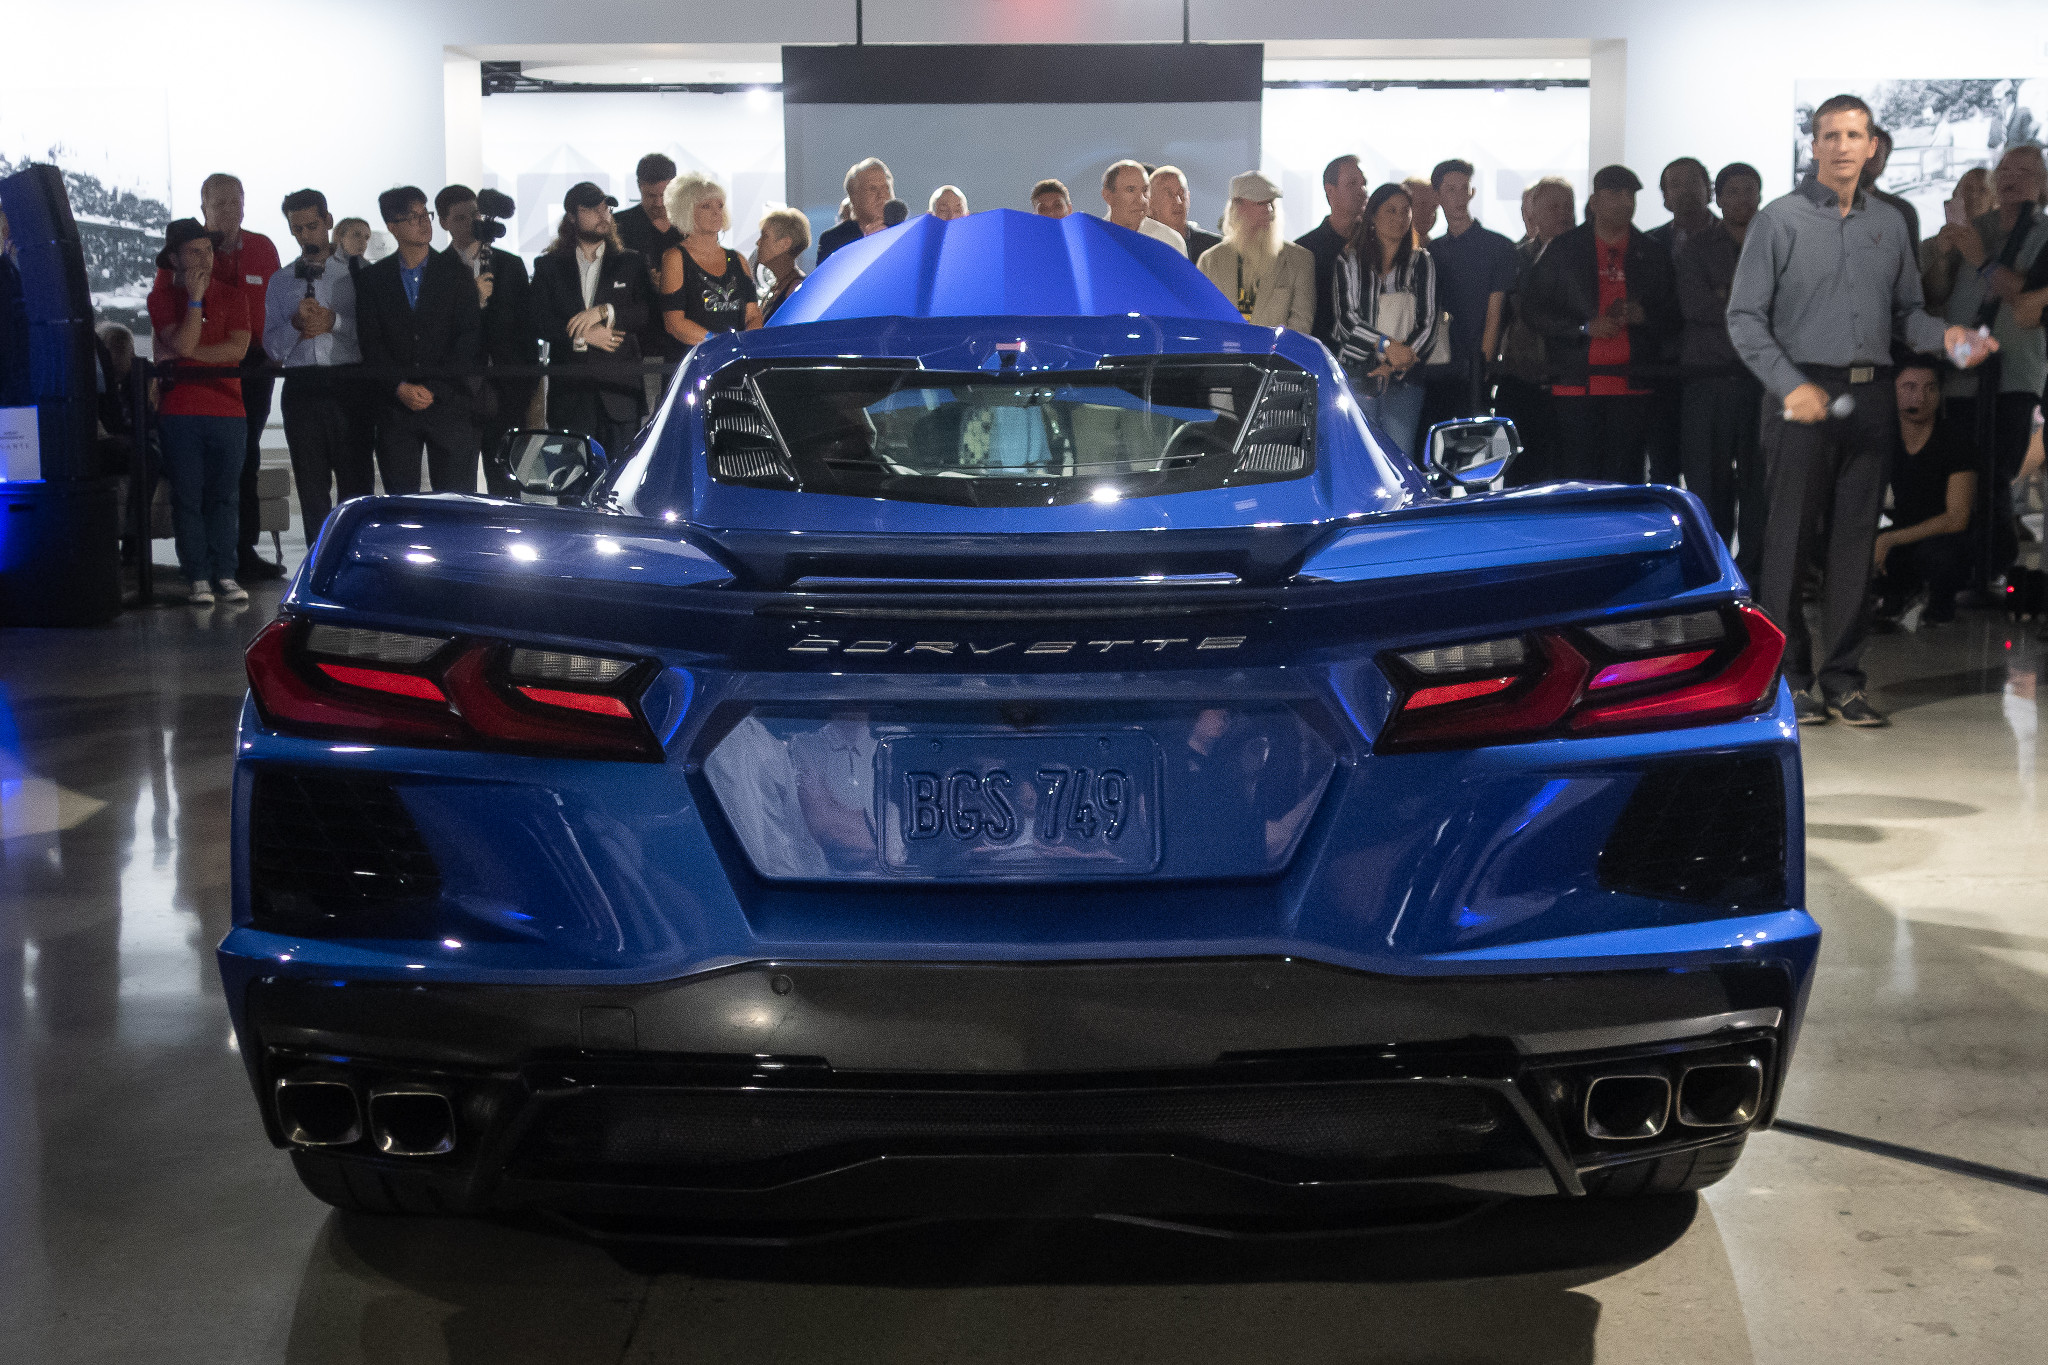 We Got Up Close to the 2020 Chevrolet Corvette … Pictures Can't Prepare You